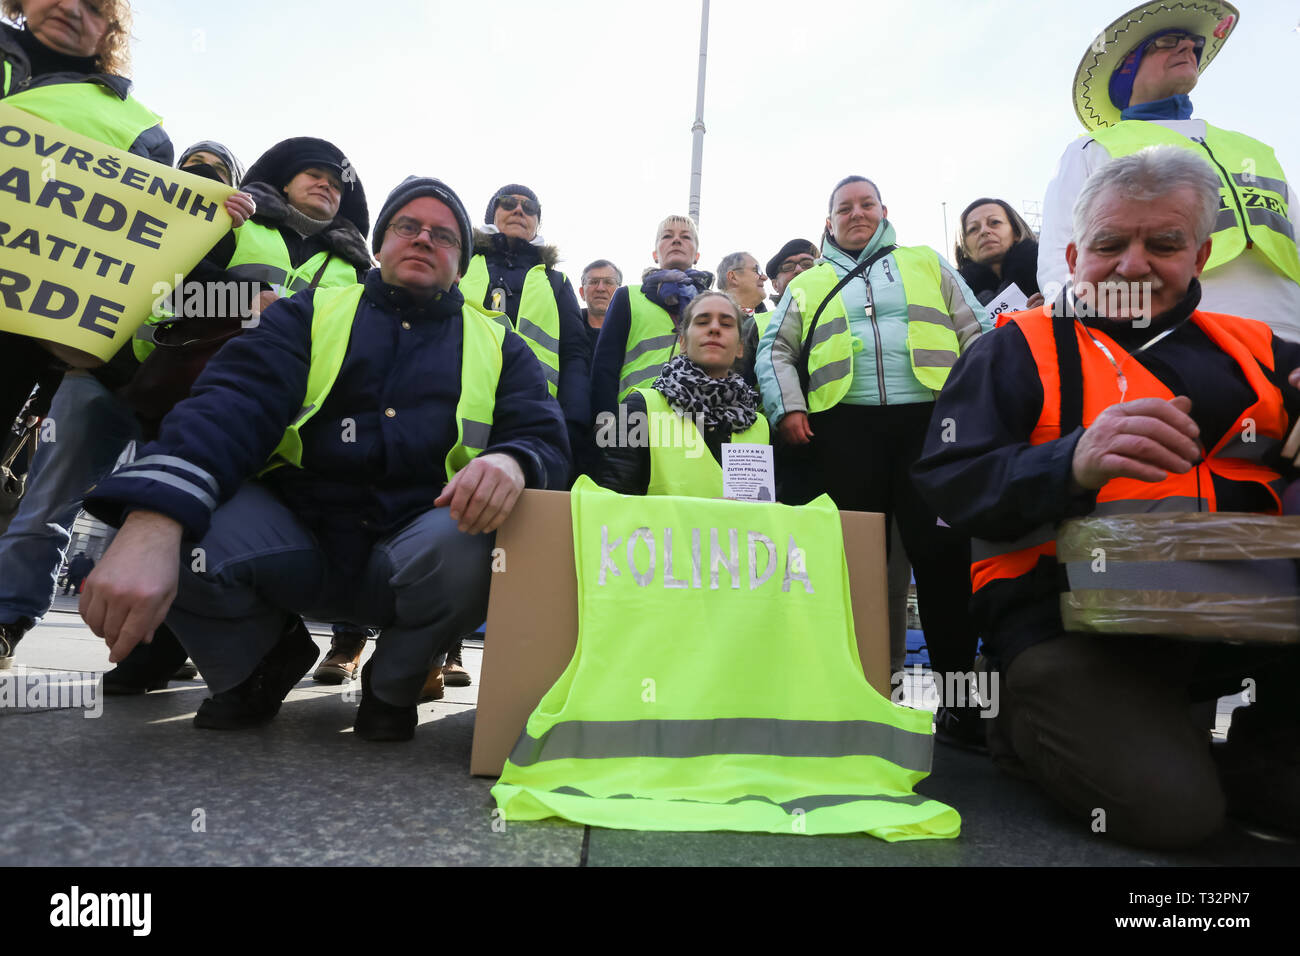 Zagreb, Croatia - February 9, 2019: A group of Yellow vests demonstrators protesting with the presidents name written on a yellow vest at Jelacic squa - Stock Image